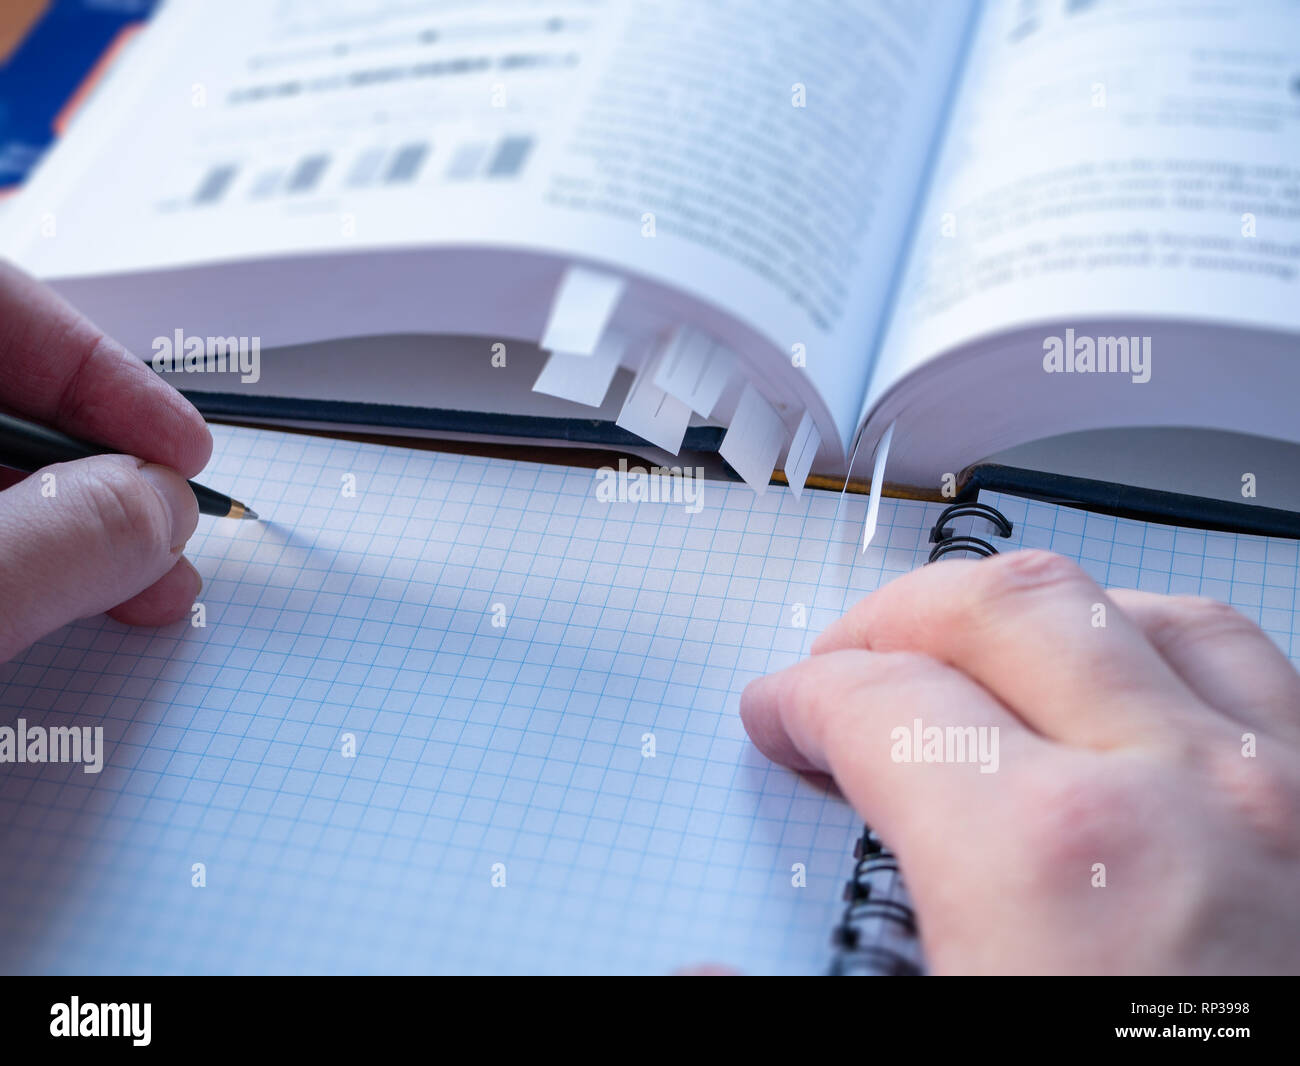 closeup image of left handed student with pen above exercise book making memos . blurred book on background - Stock Image